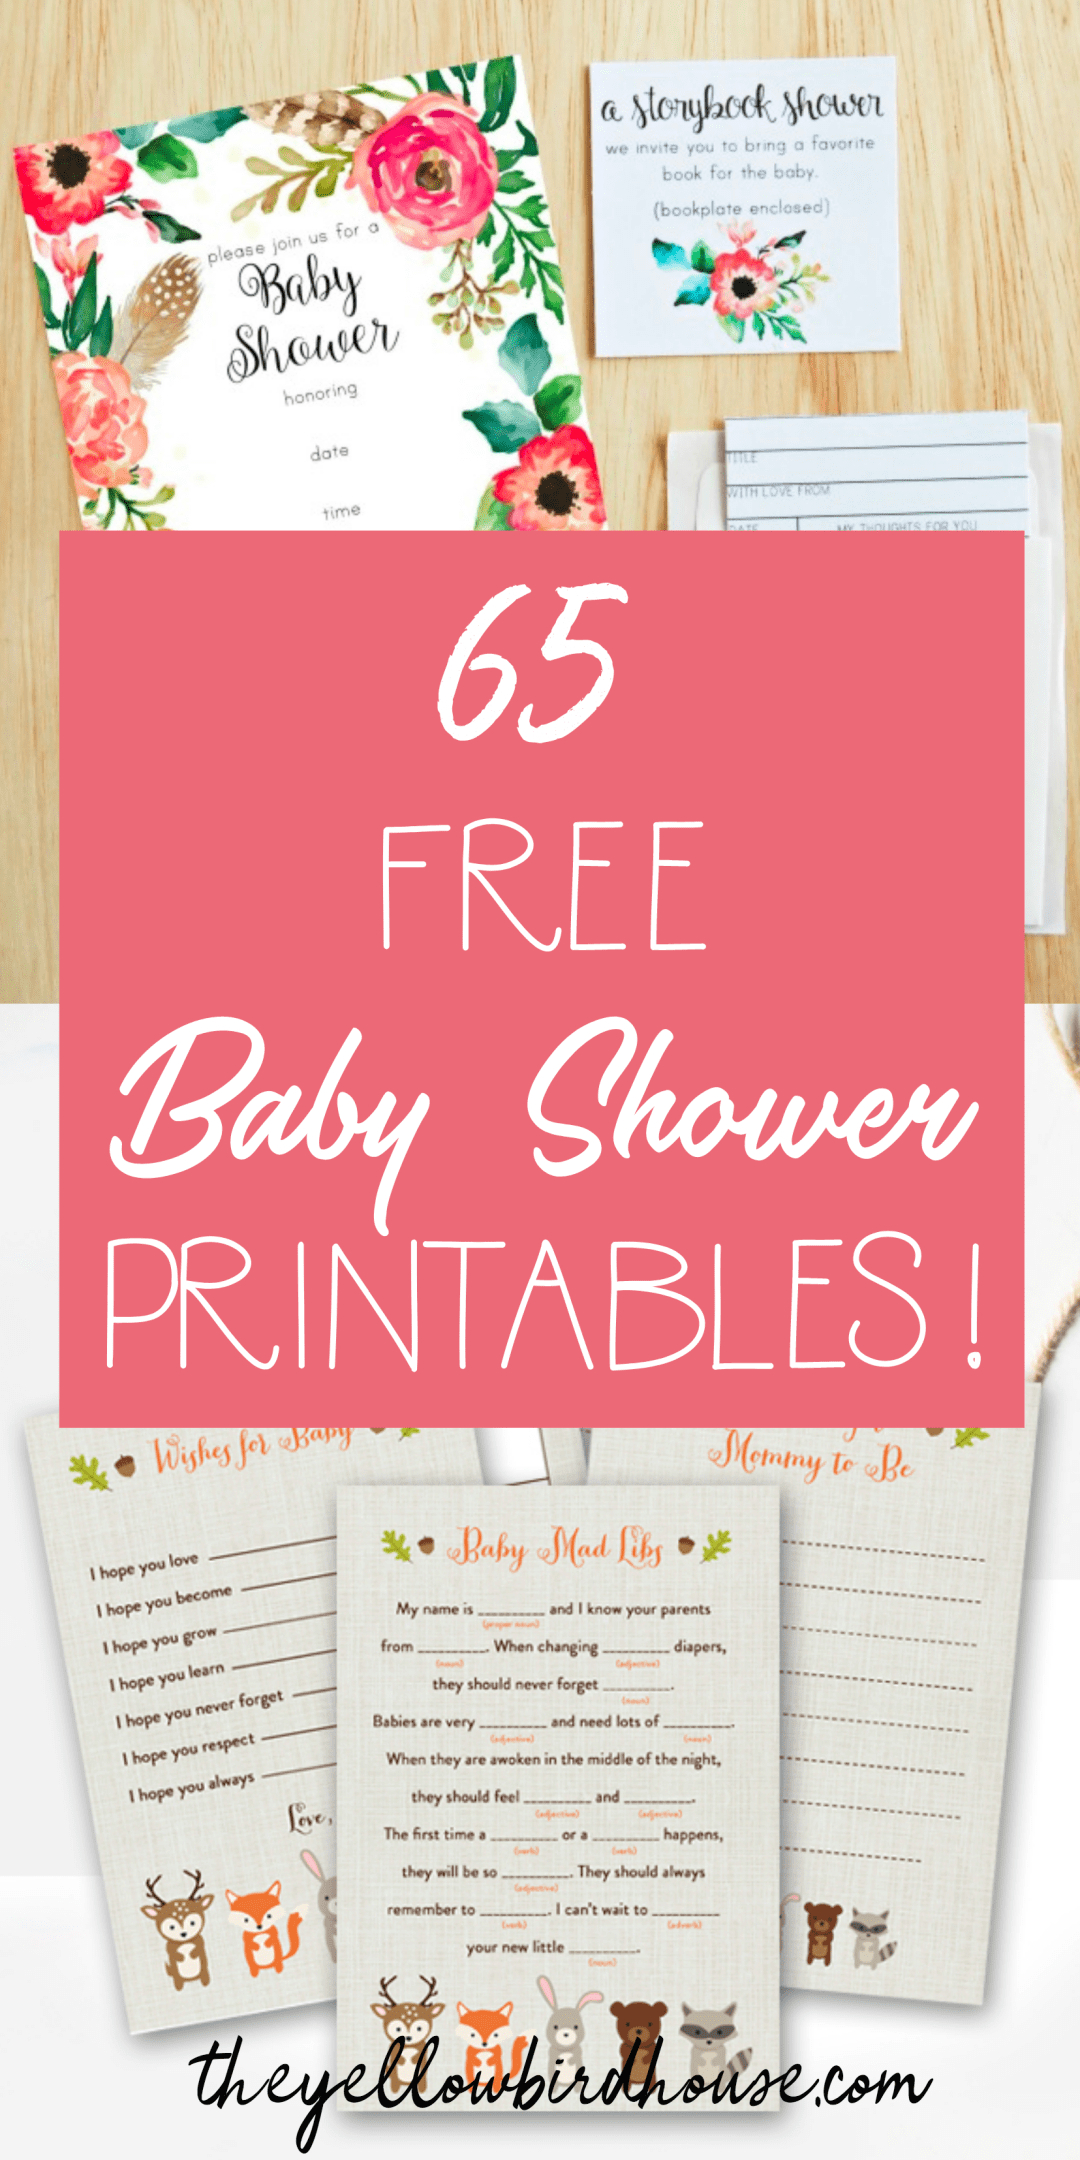 65 Free Baby Shower Printables For Throwing An Adorable Party! Free - Free Woodland Baby Shower Printables